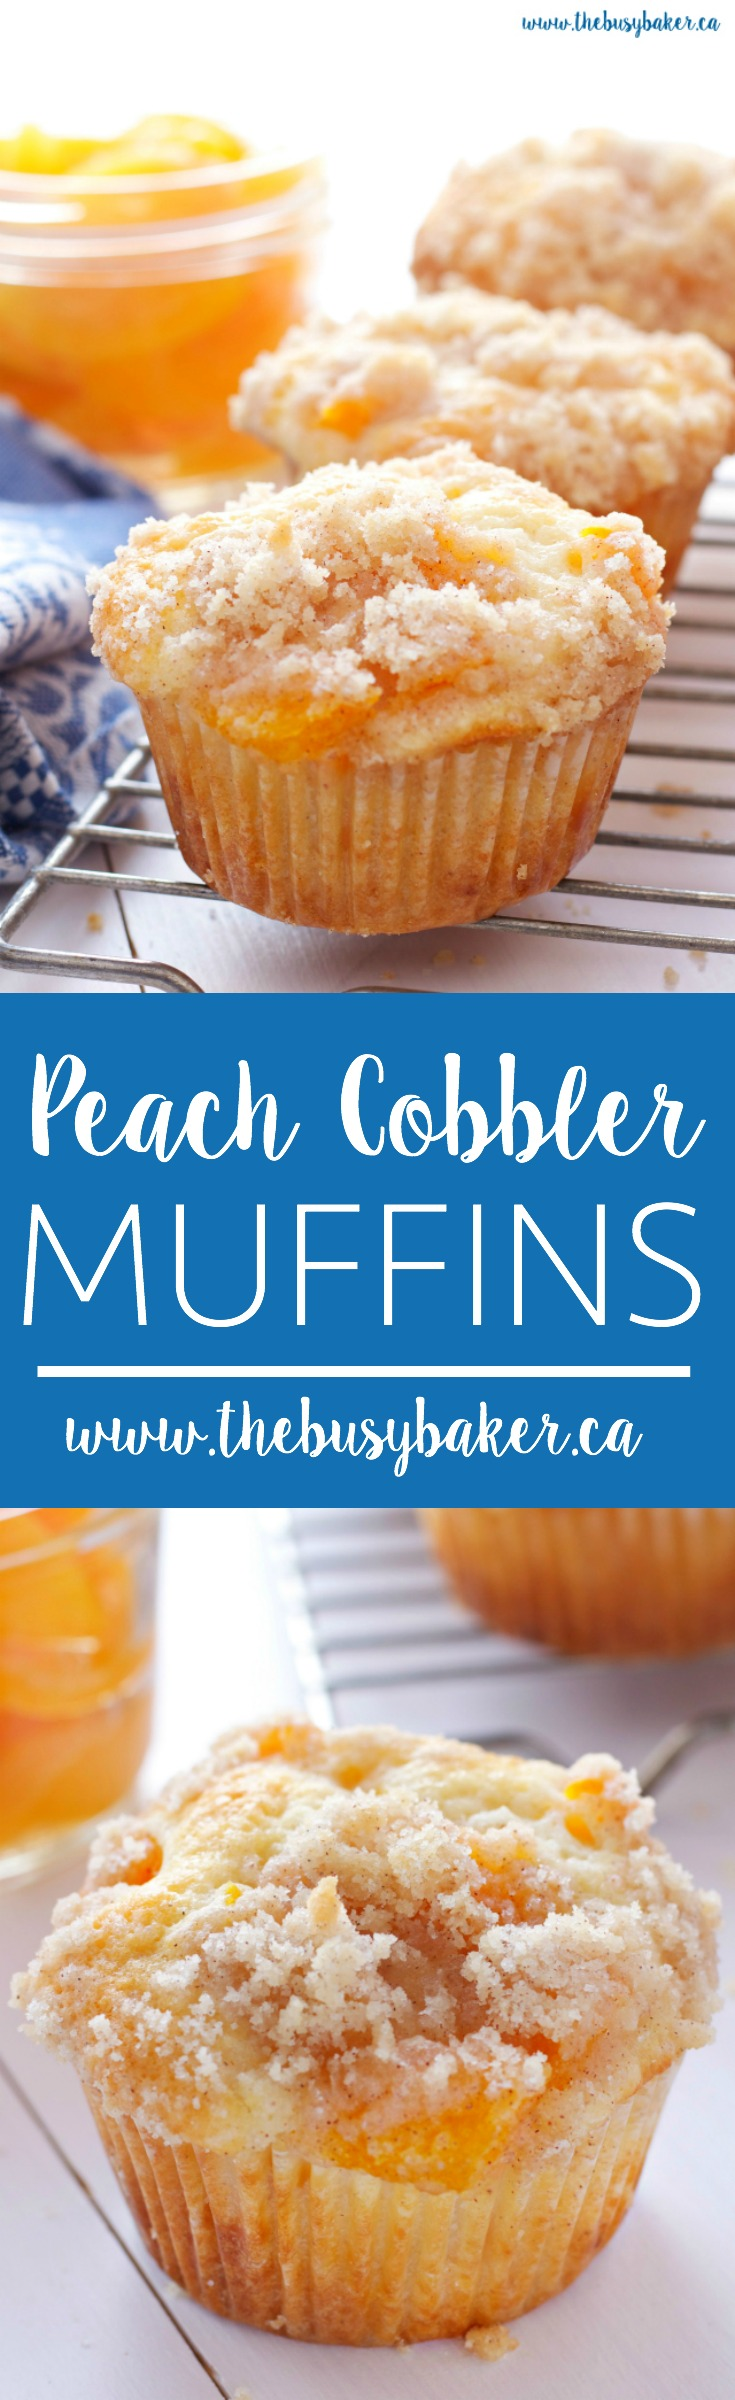 These Peach Cobbler Muffins are the perfect sweet snack! This is such an easy recipe that taste's just like Grandma's peach cobbler! And the best part? They're even easier to make than a traditional cobbler and have the perfect crumble topping! Recipe from thebusybaker.ca! #peachcobbler #peachcobblermuffins #peachmuffins via @busybakerblog